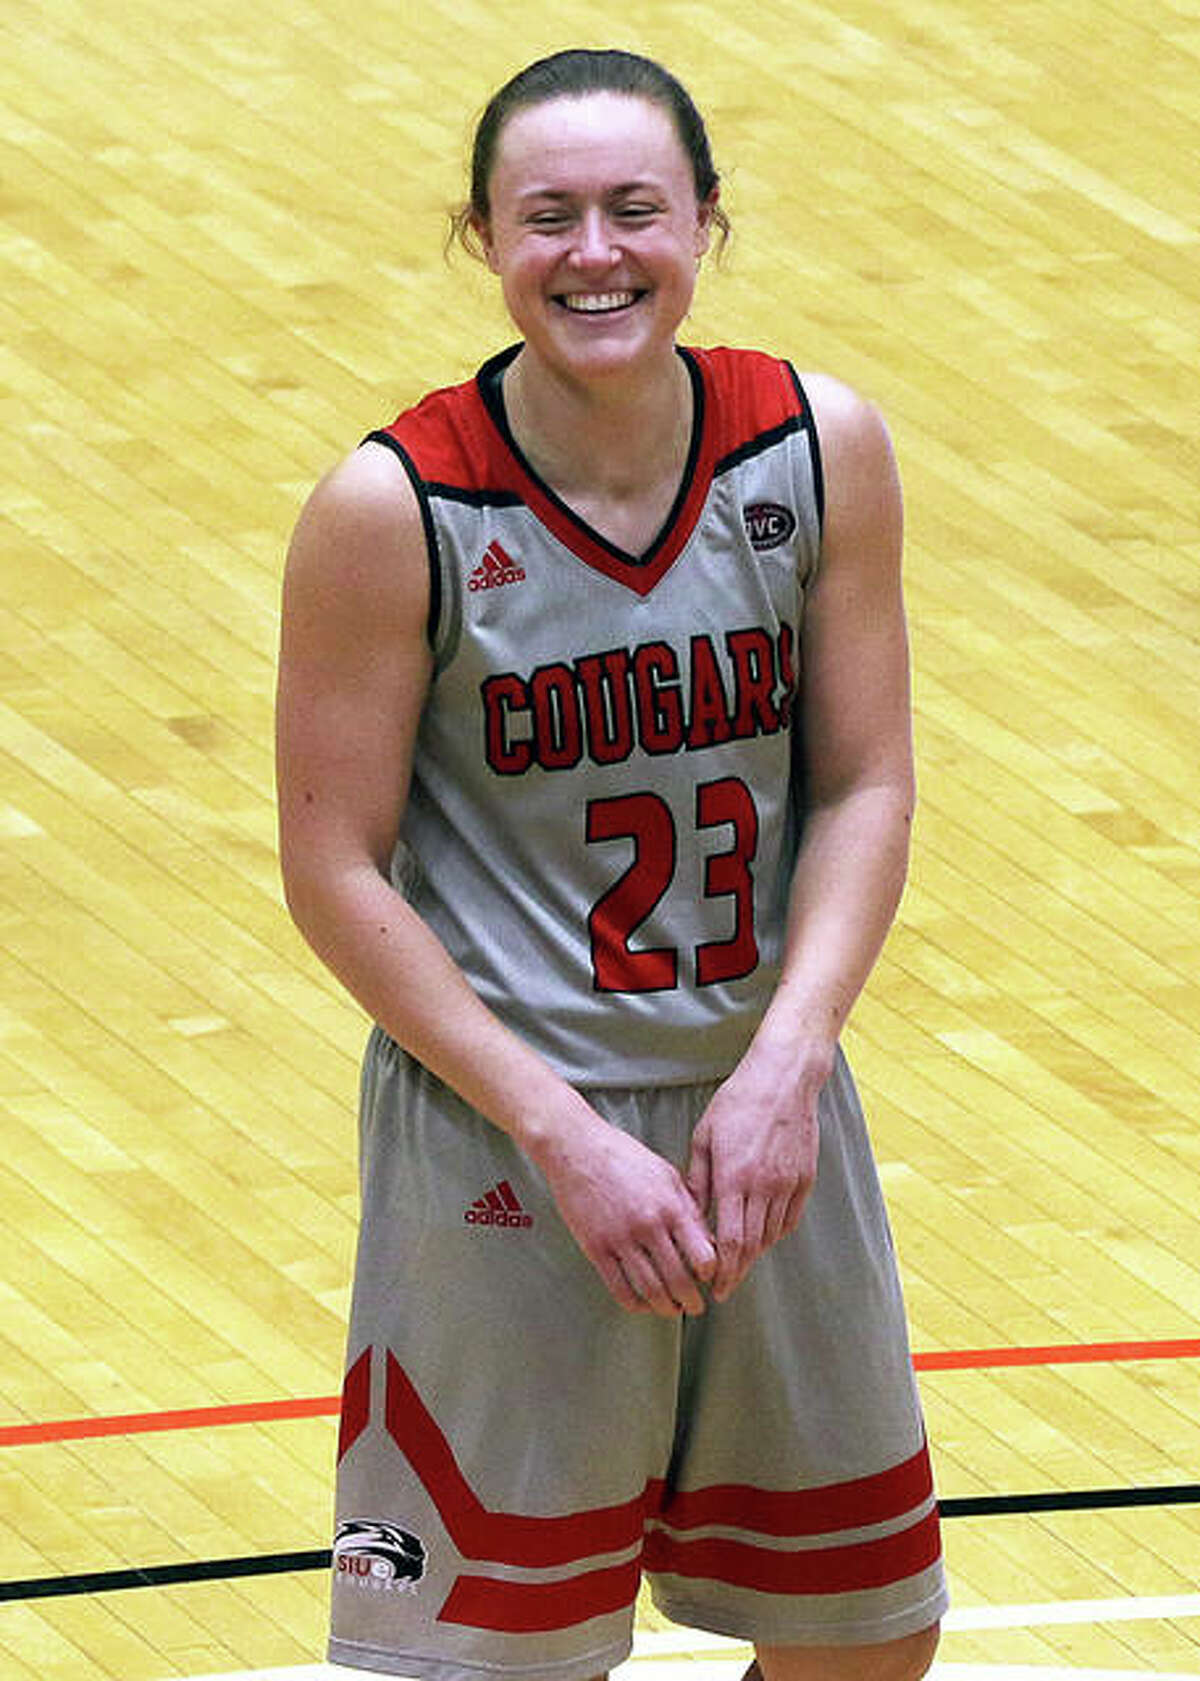 SIUE's Allie Troeckler enjoys a light moment with at teammate before completing a three-point play during Wednesday's victory over UHSP at First Community Arena in Edwardsville.